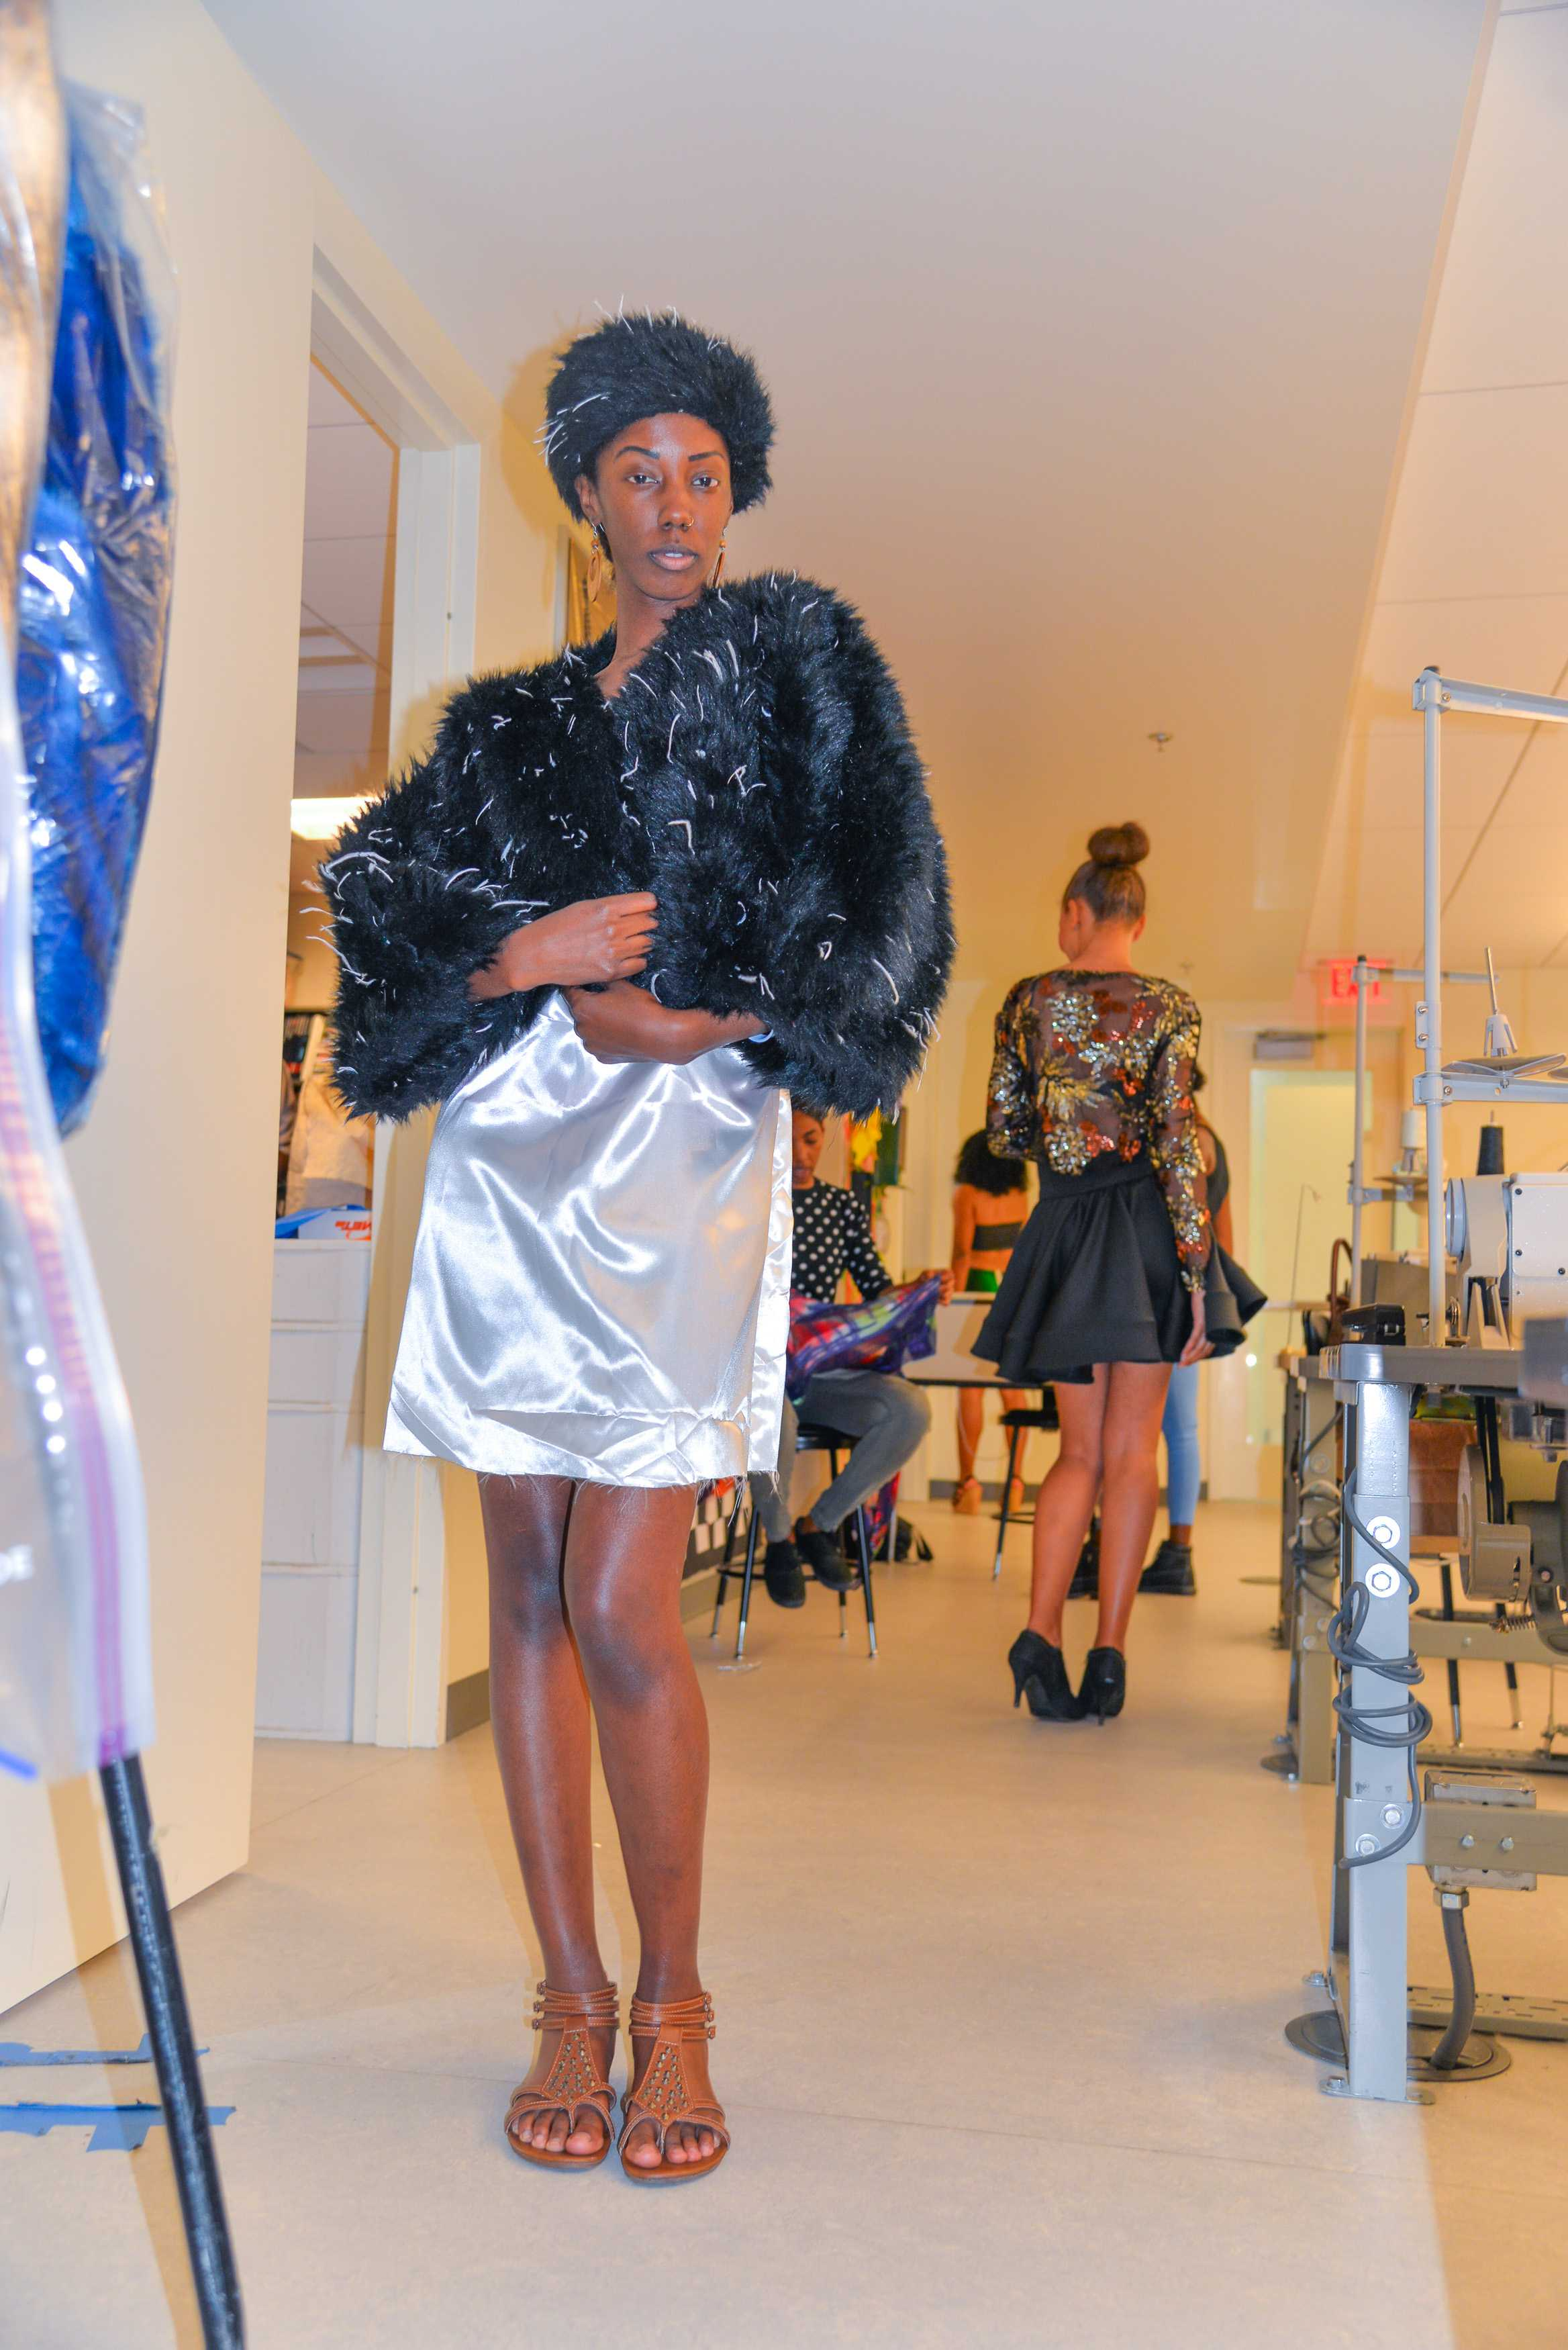 Shoulders up, Chin at the perfect angle and heels down: Models get ready for upcoming fashion show